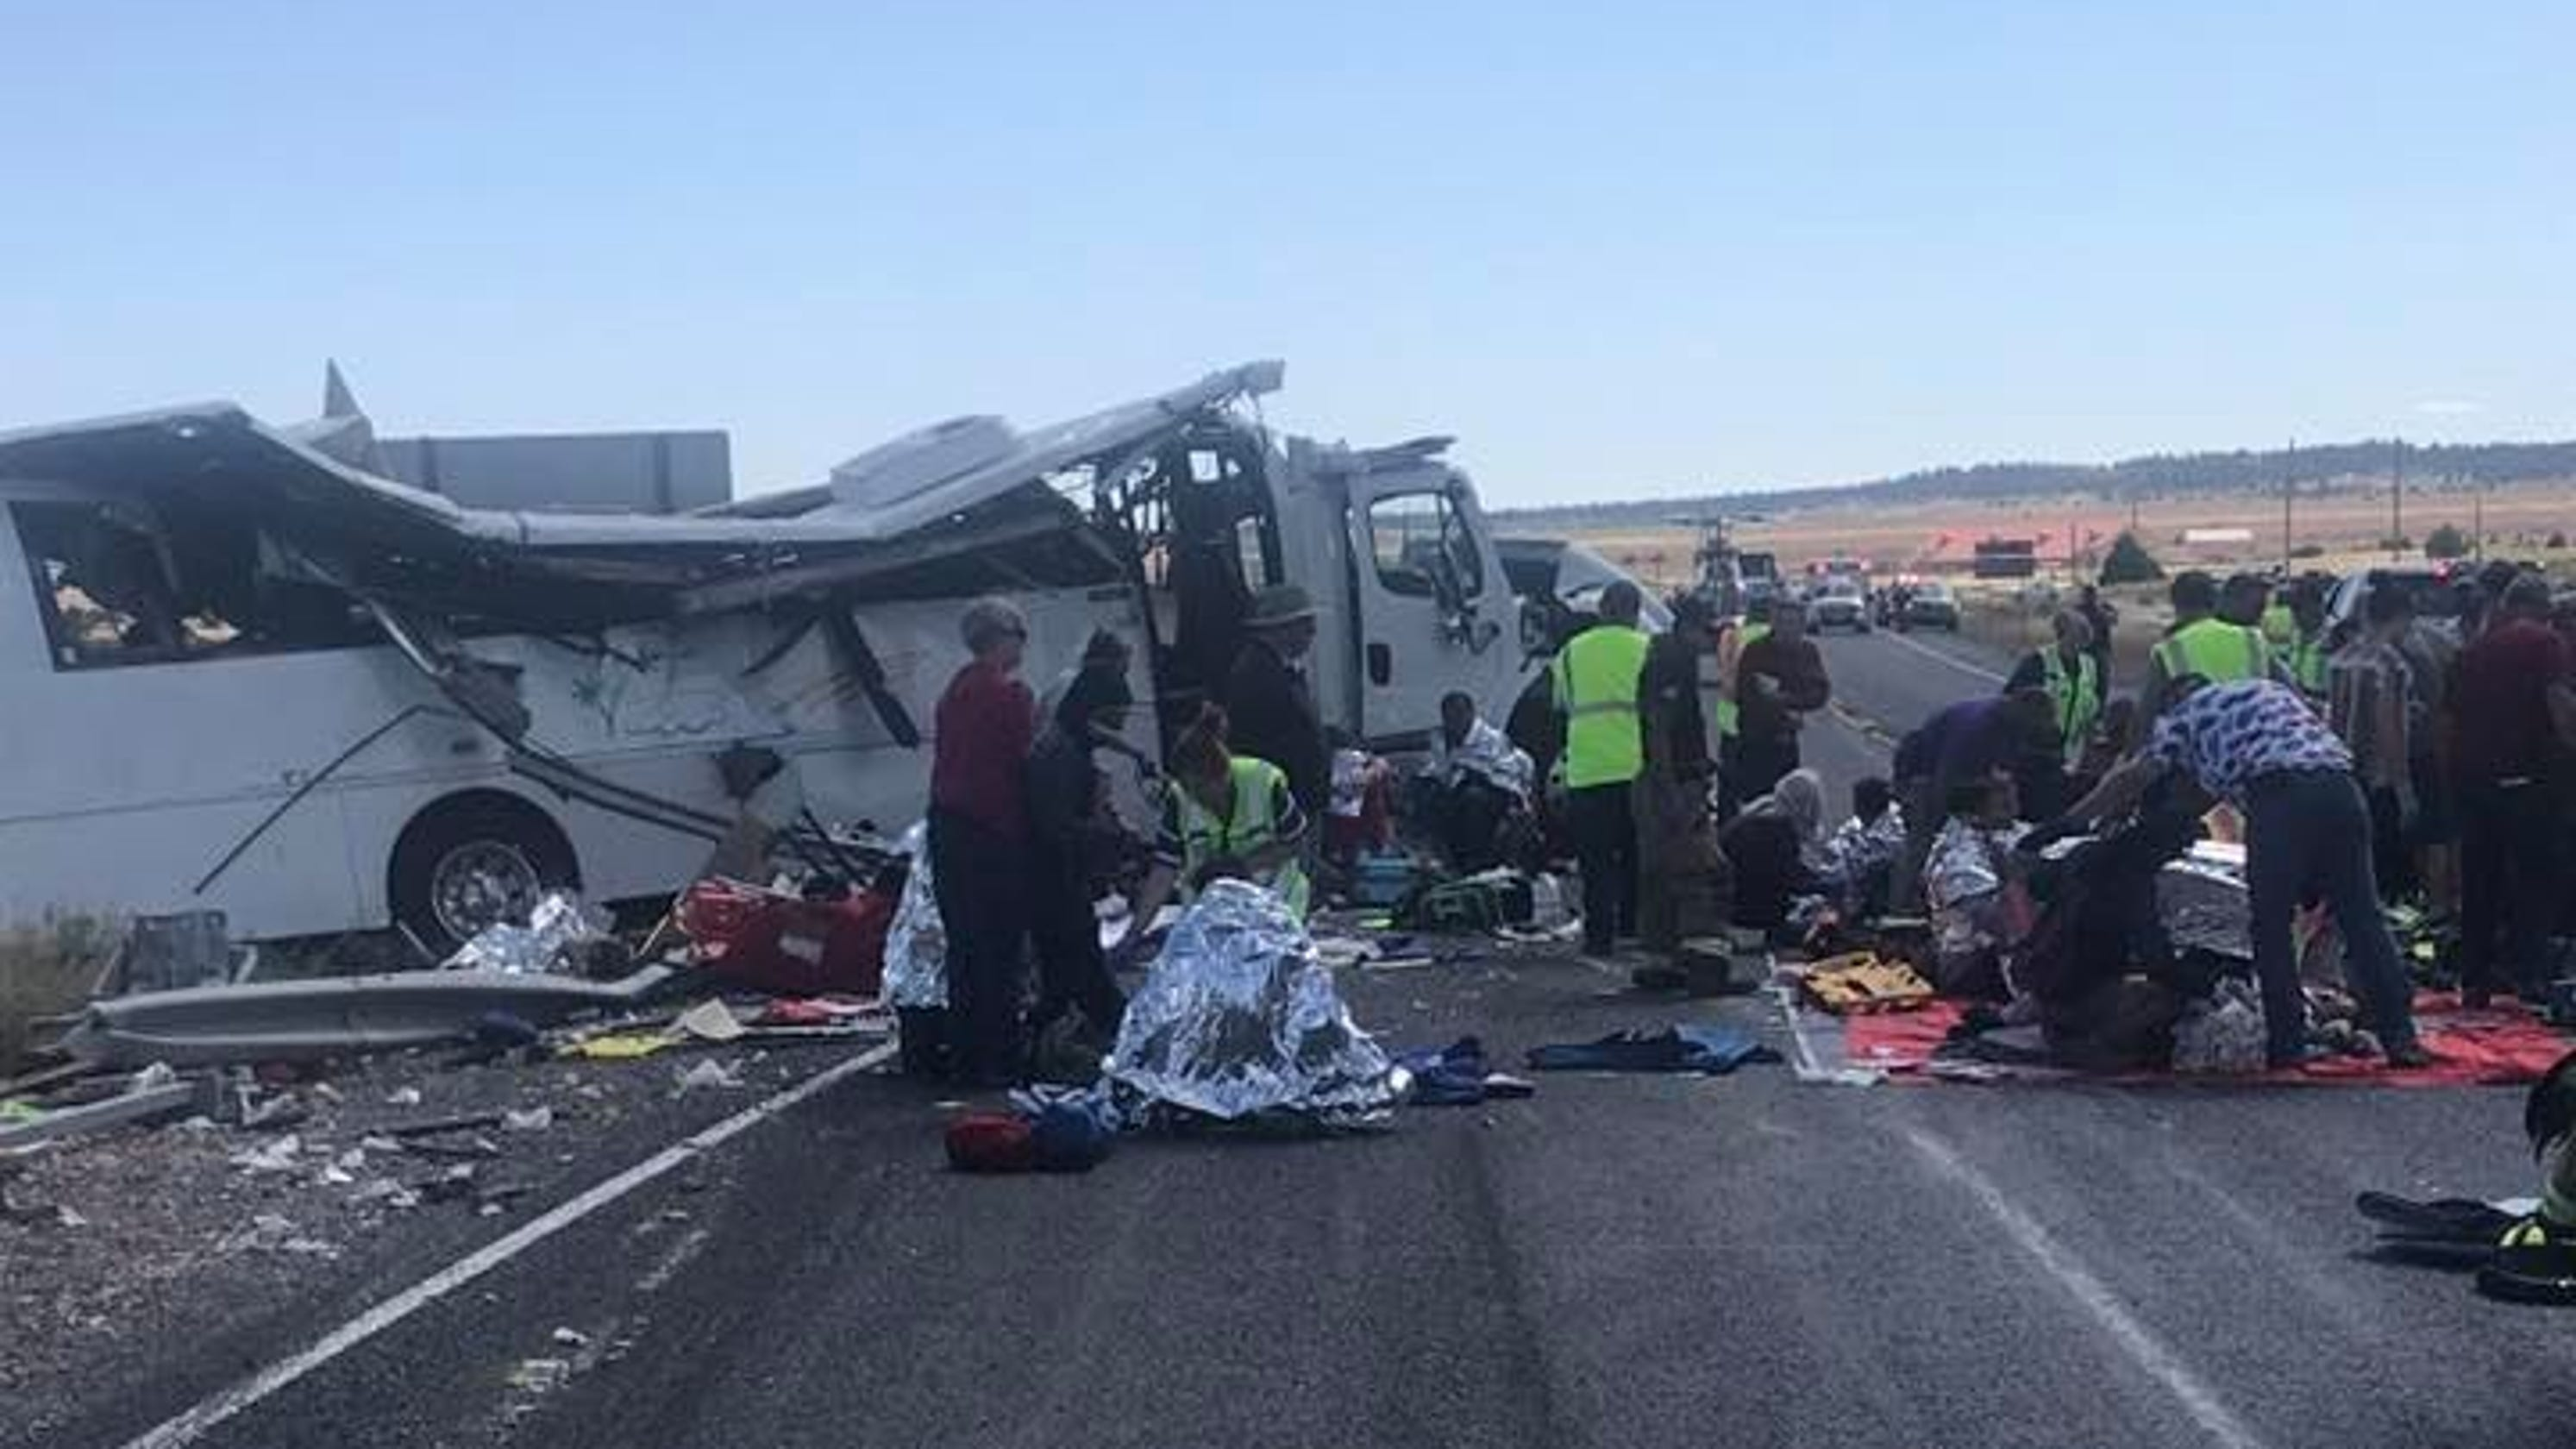 Bryce Canyon tour bus crash in Utah: 4 victims identified. Here's what we know now.